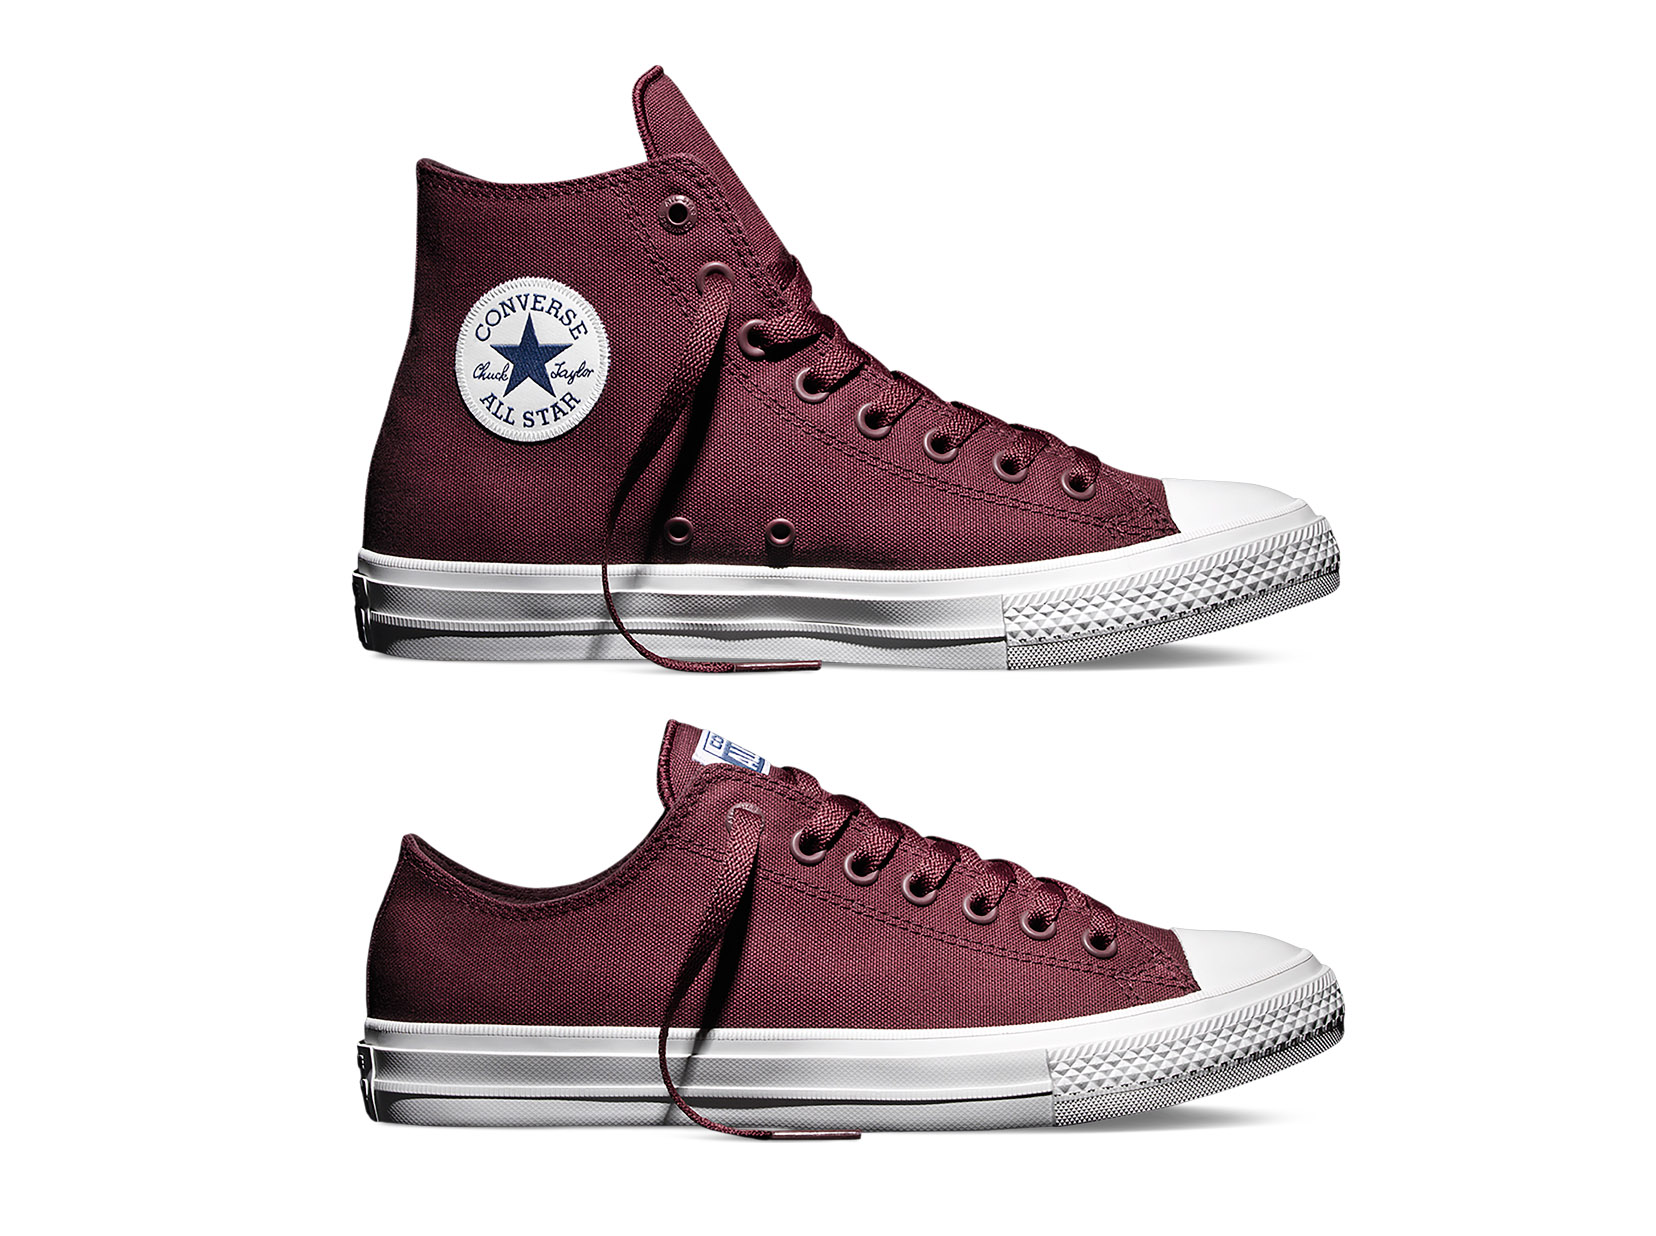 converse chuck taylor all star ii 39 bordeaux 39 available. Black Bedroom Furniture Sets. Home Design Ideas